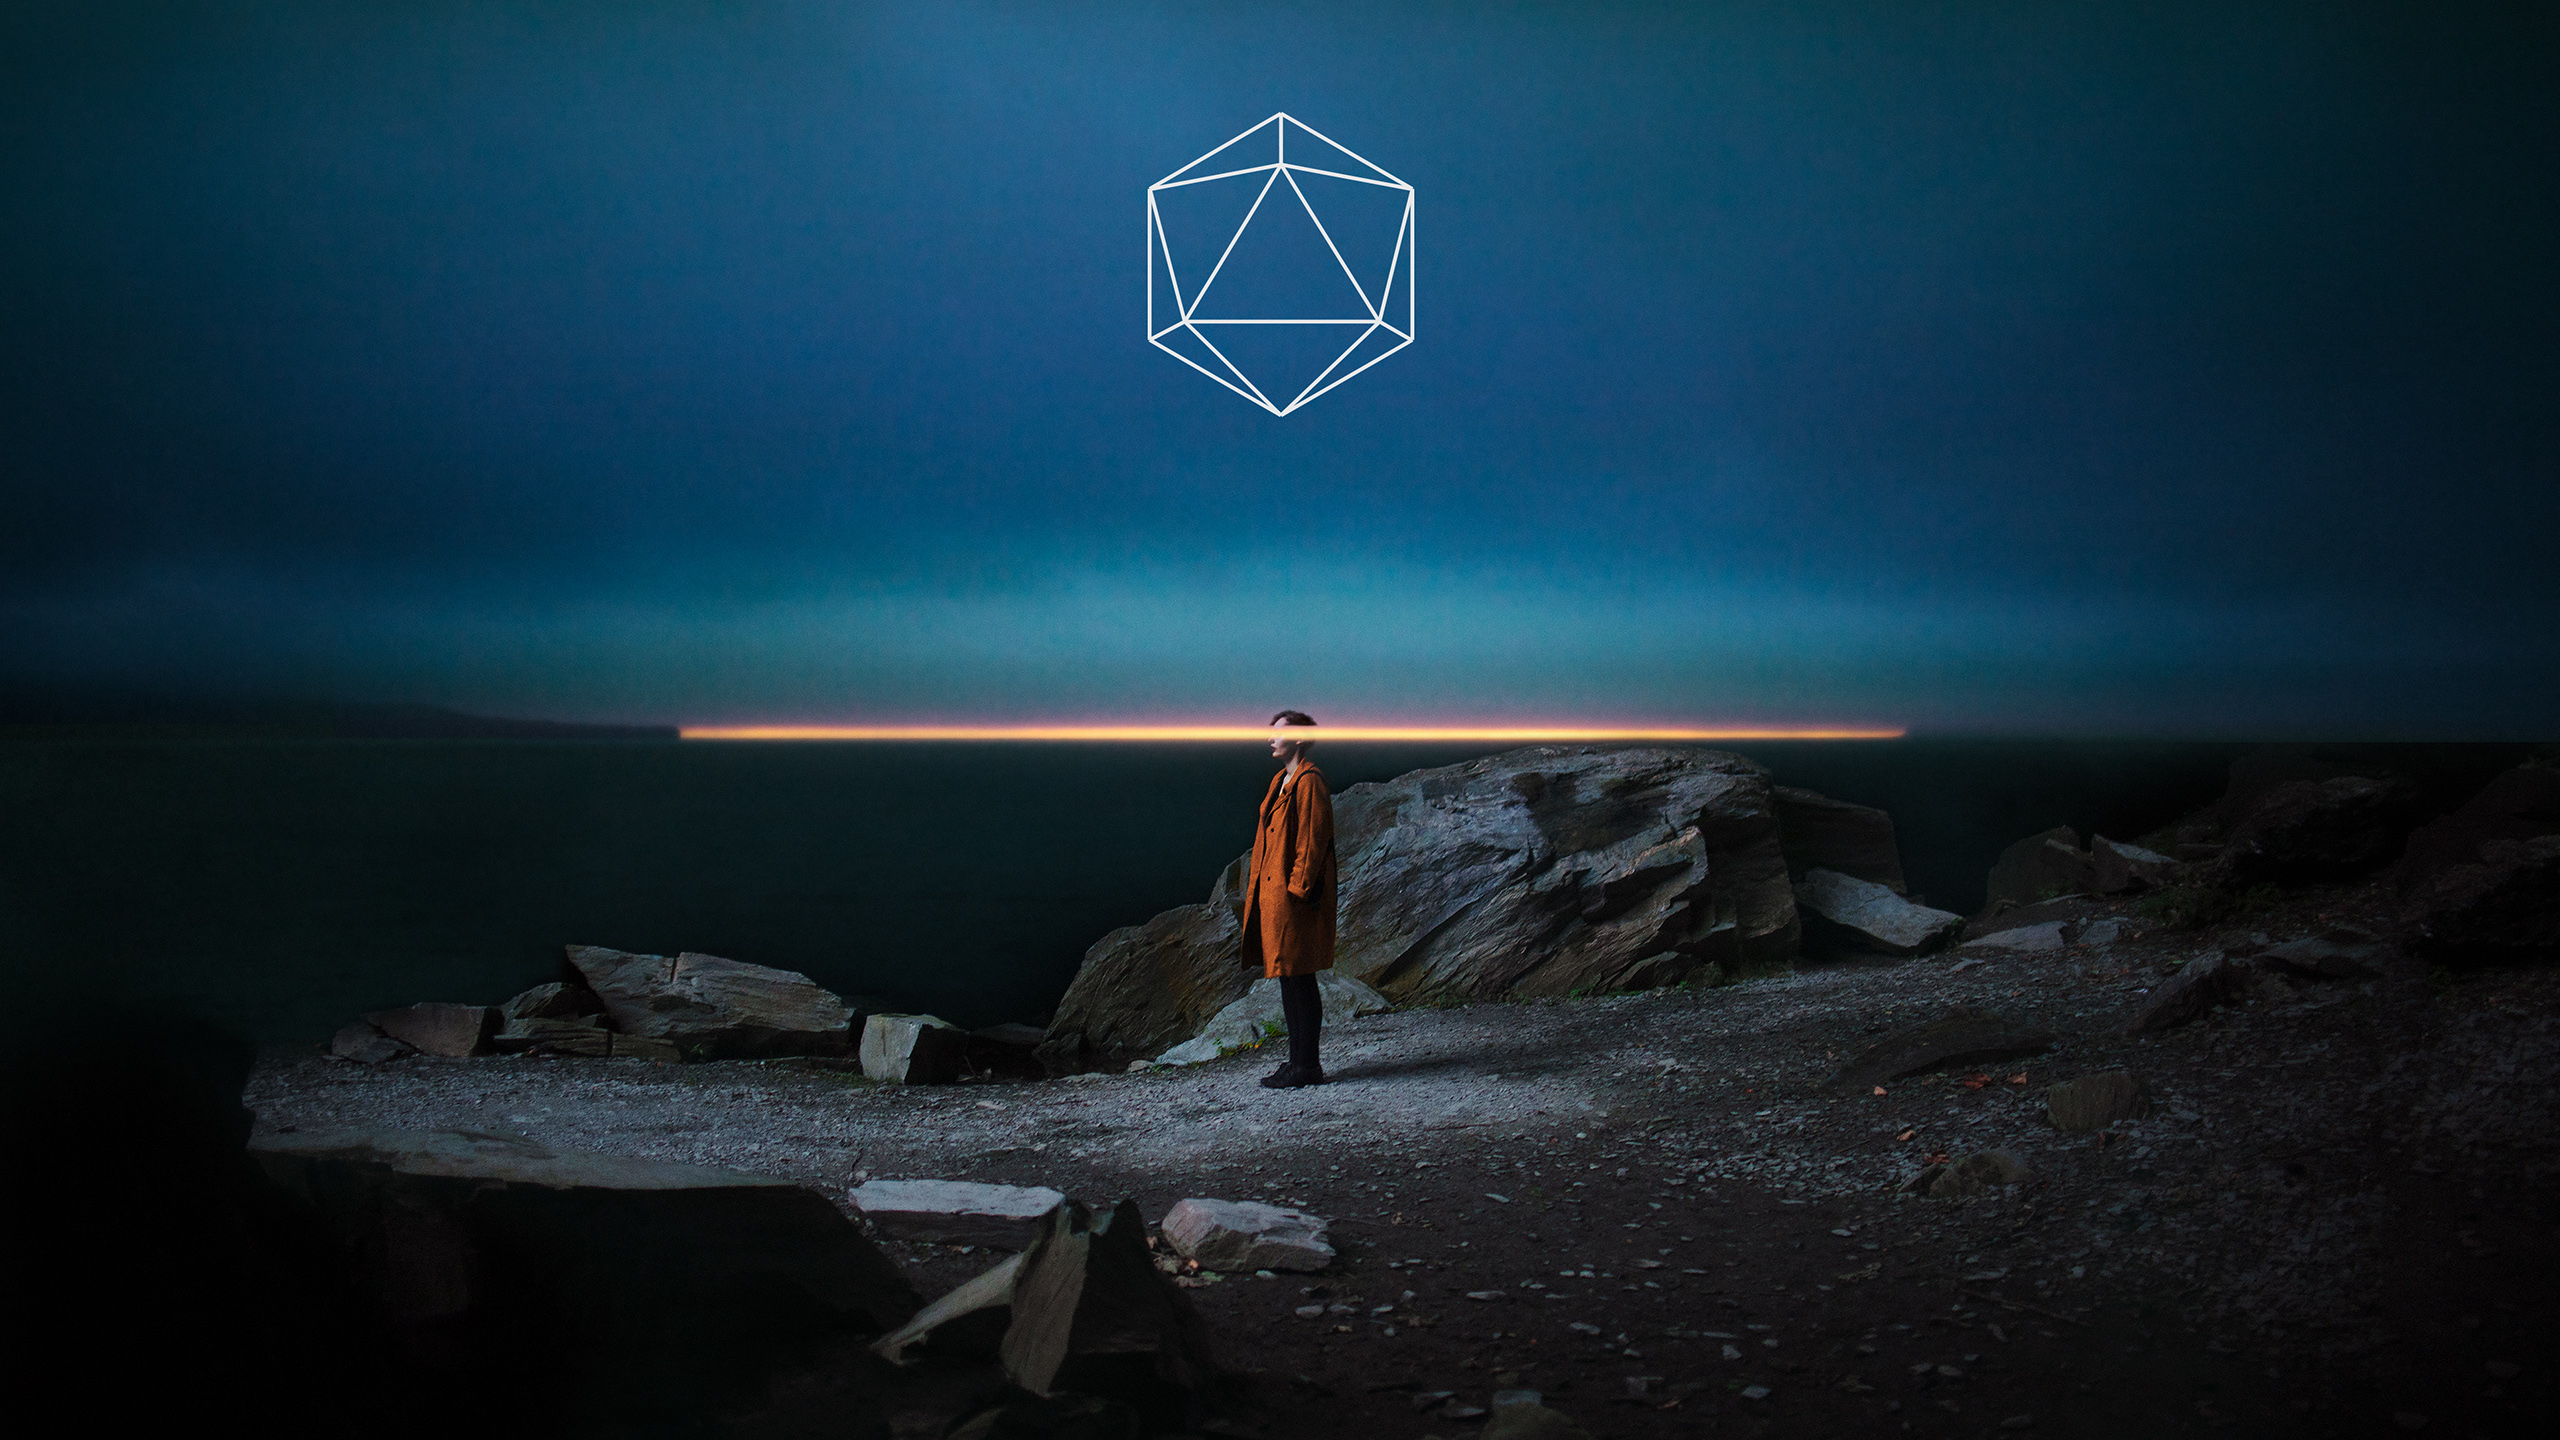 Downloads ODESZA 2560x1440